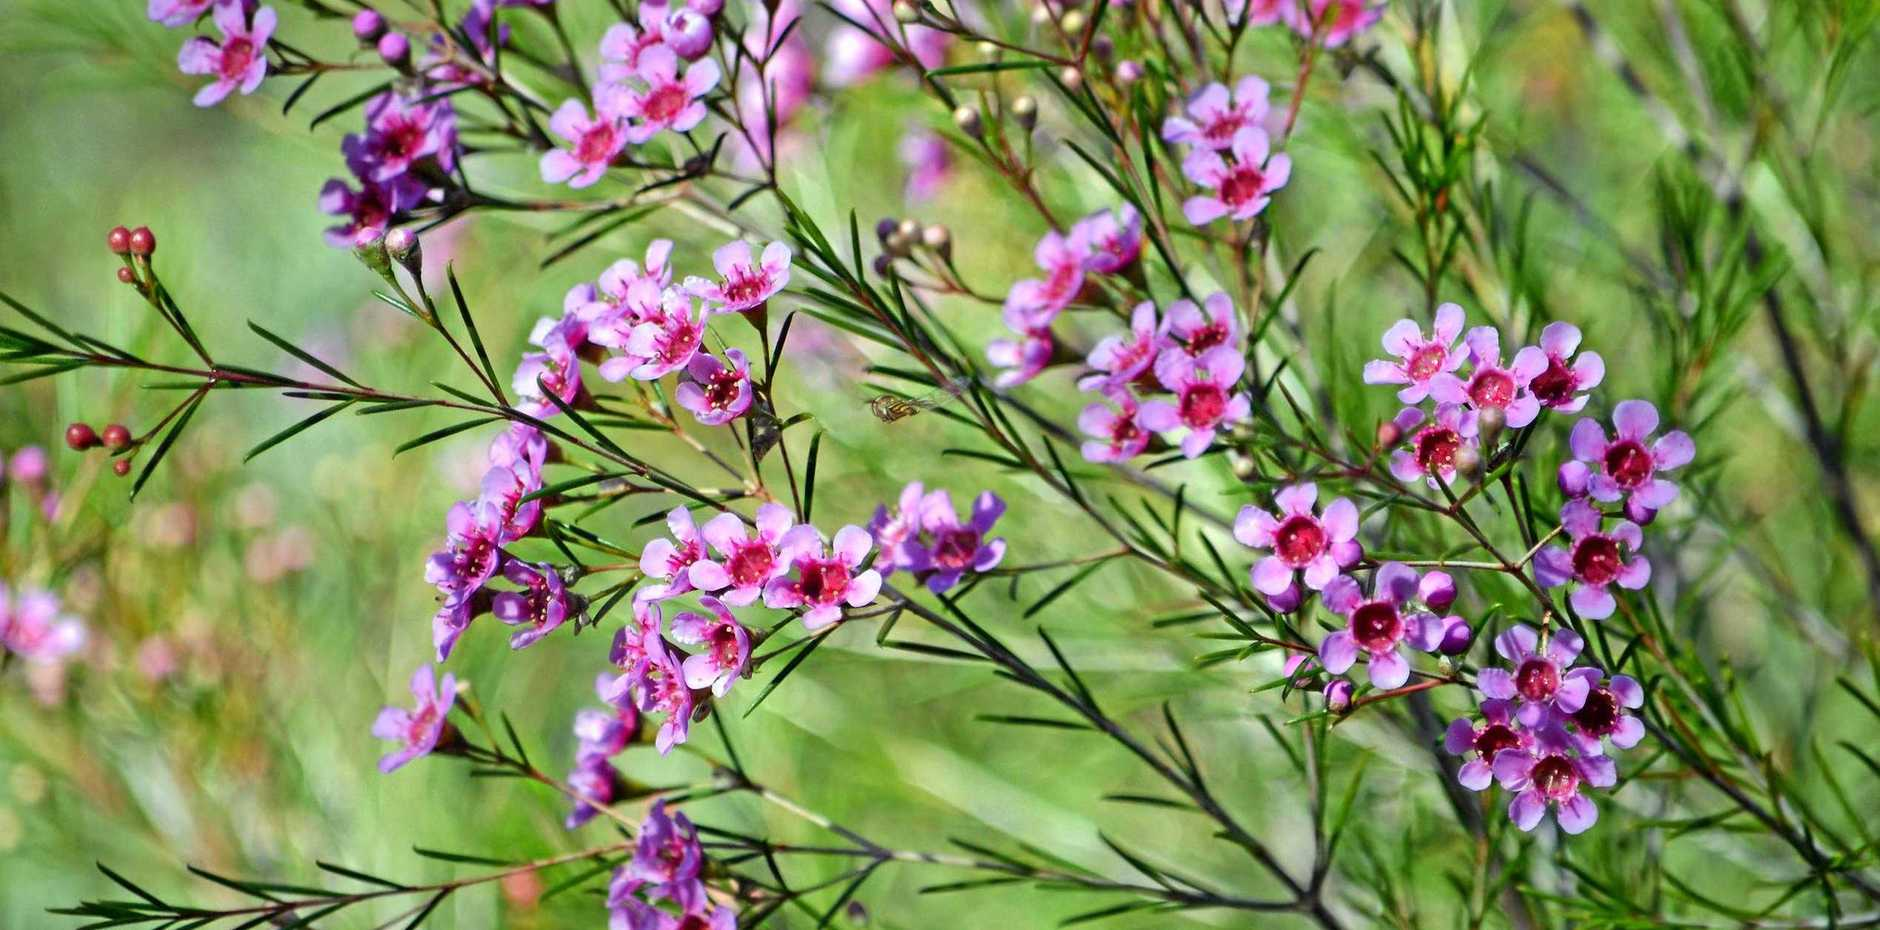 Geraldton wax flowers in late winter and spring, when each of its wispy branches becomes covered in simple, five-petalled flowers about 1-1.5cm in diameter, in shades of white, pink or mauve.